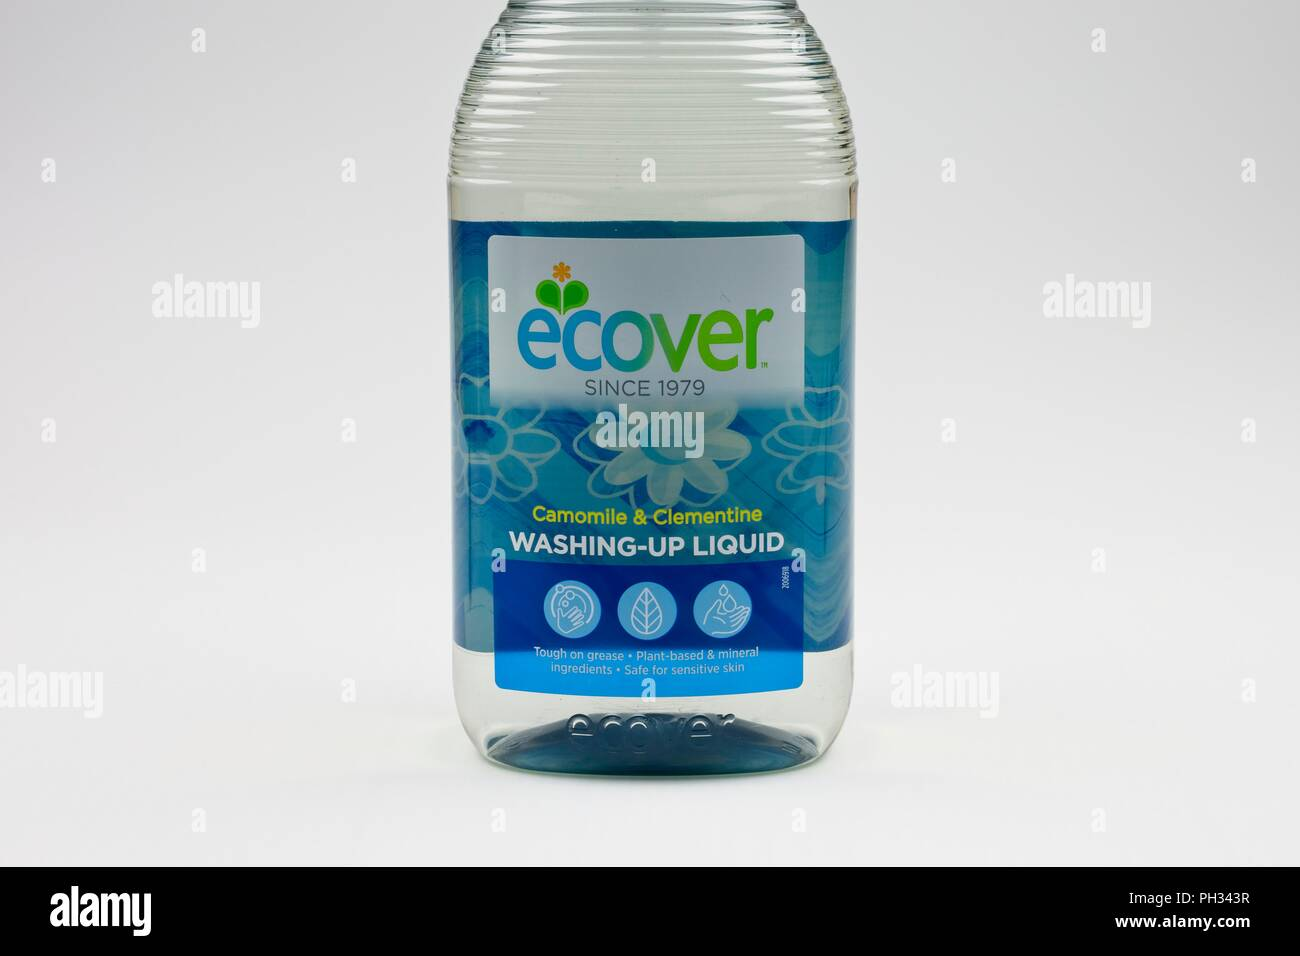 Ecover, ecological washing up liquid in a bottle - Stock Image